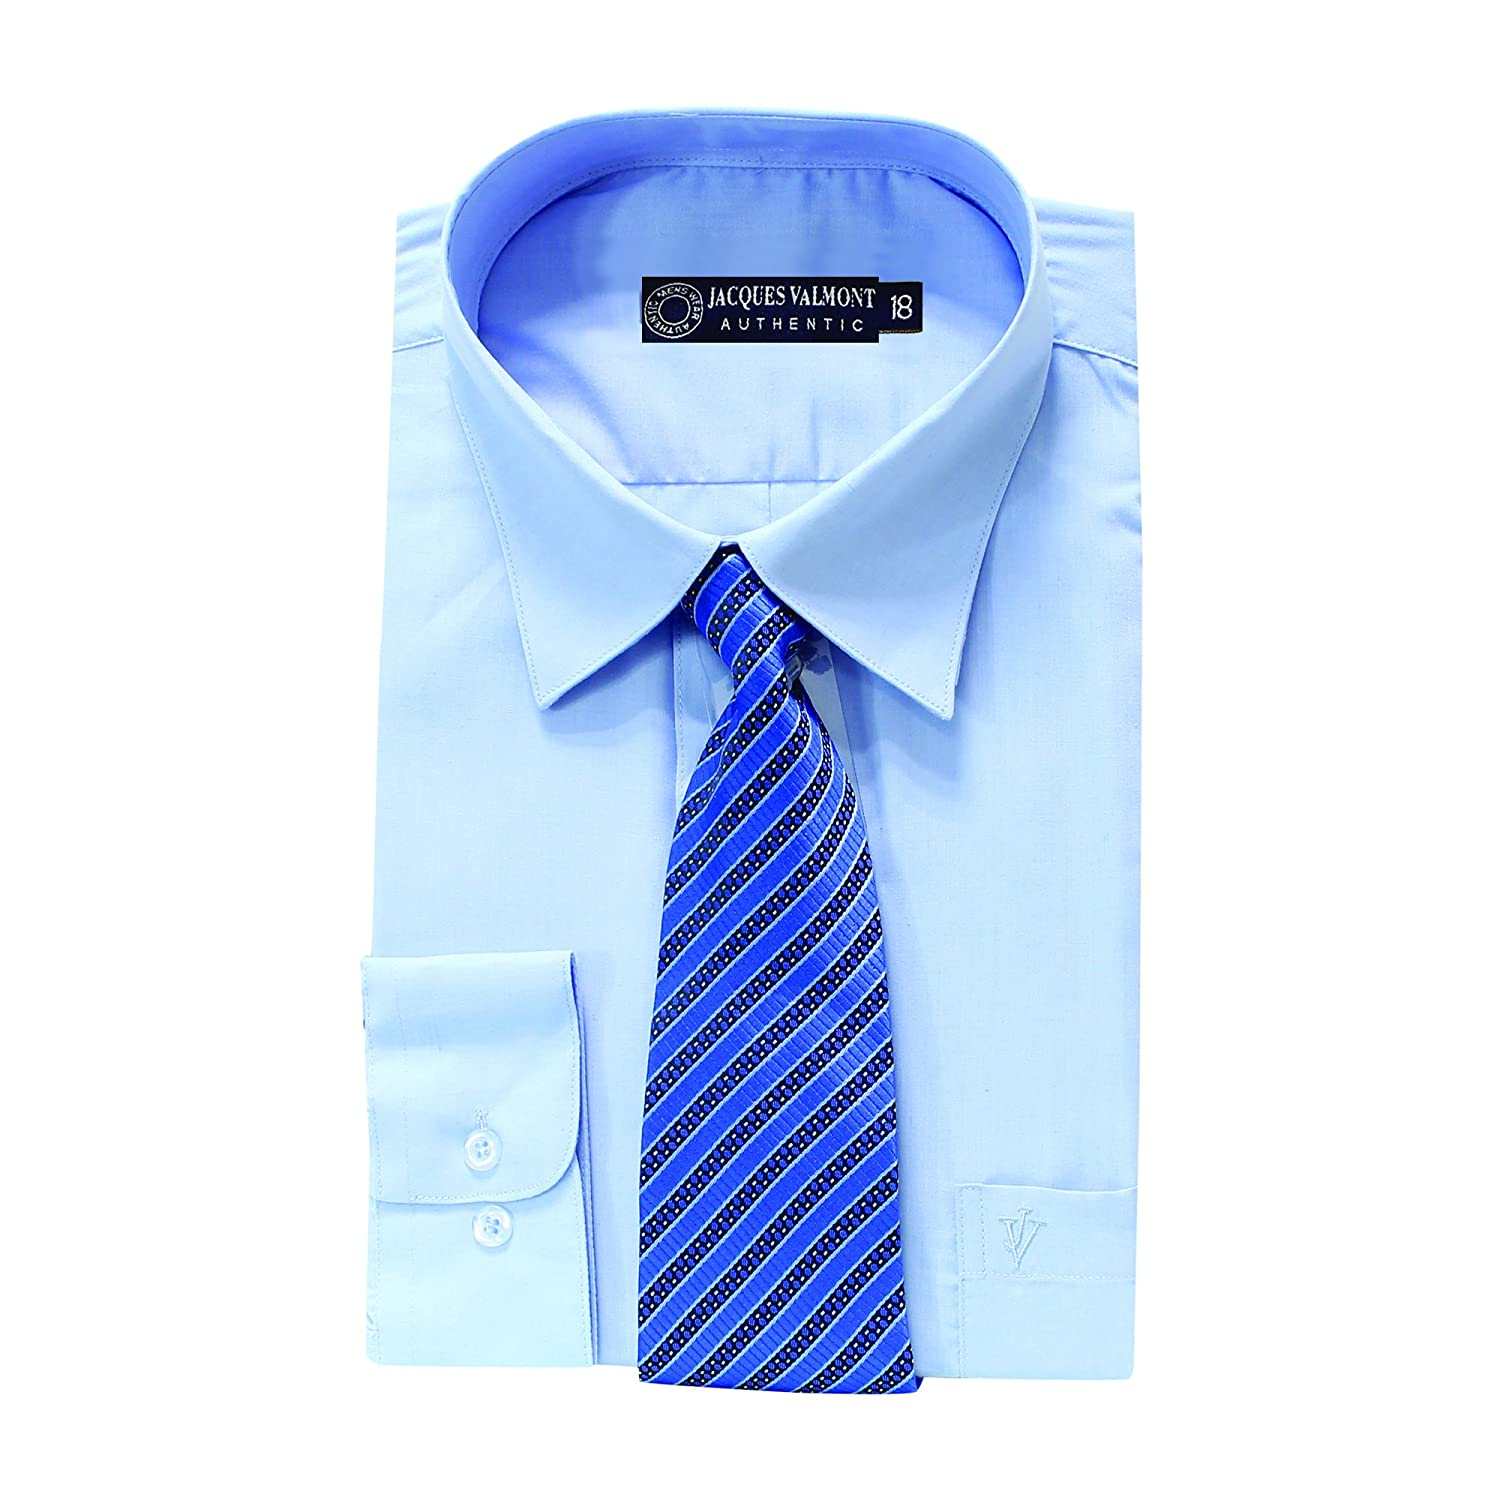 Jacques Valmont Boy's Long Sleeve Shirt with Tie and Accessories (Multiple Colors) JV_BSH_1